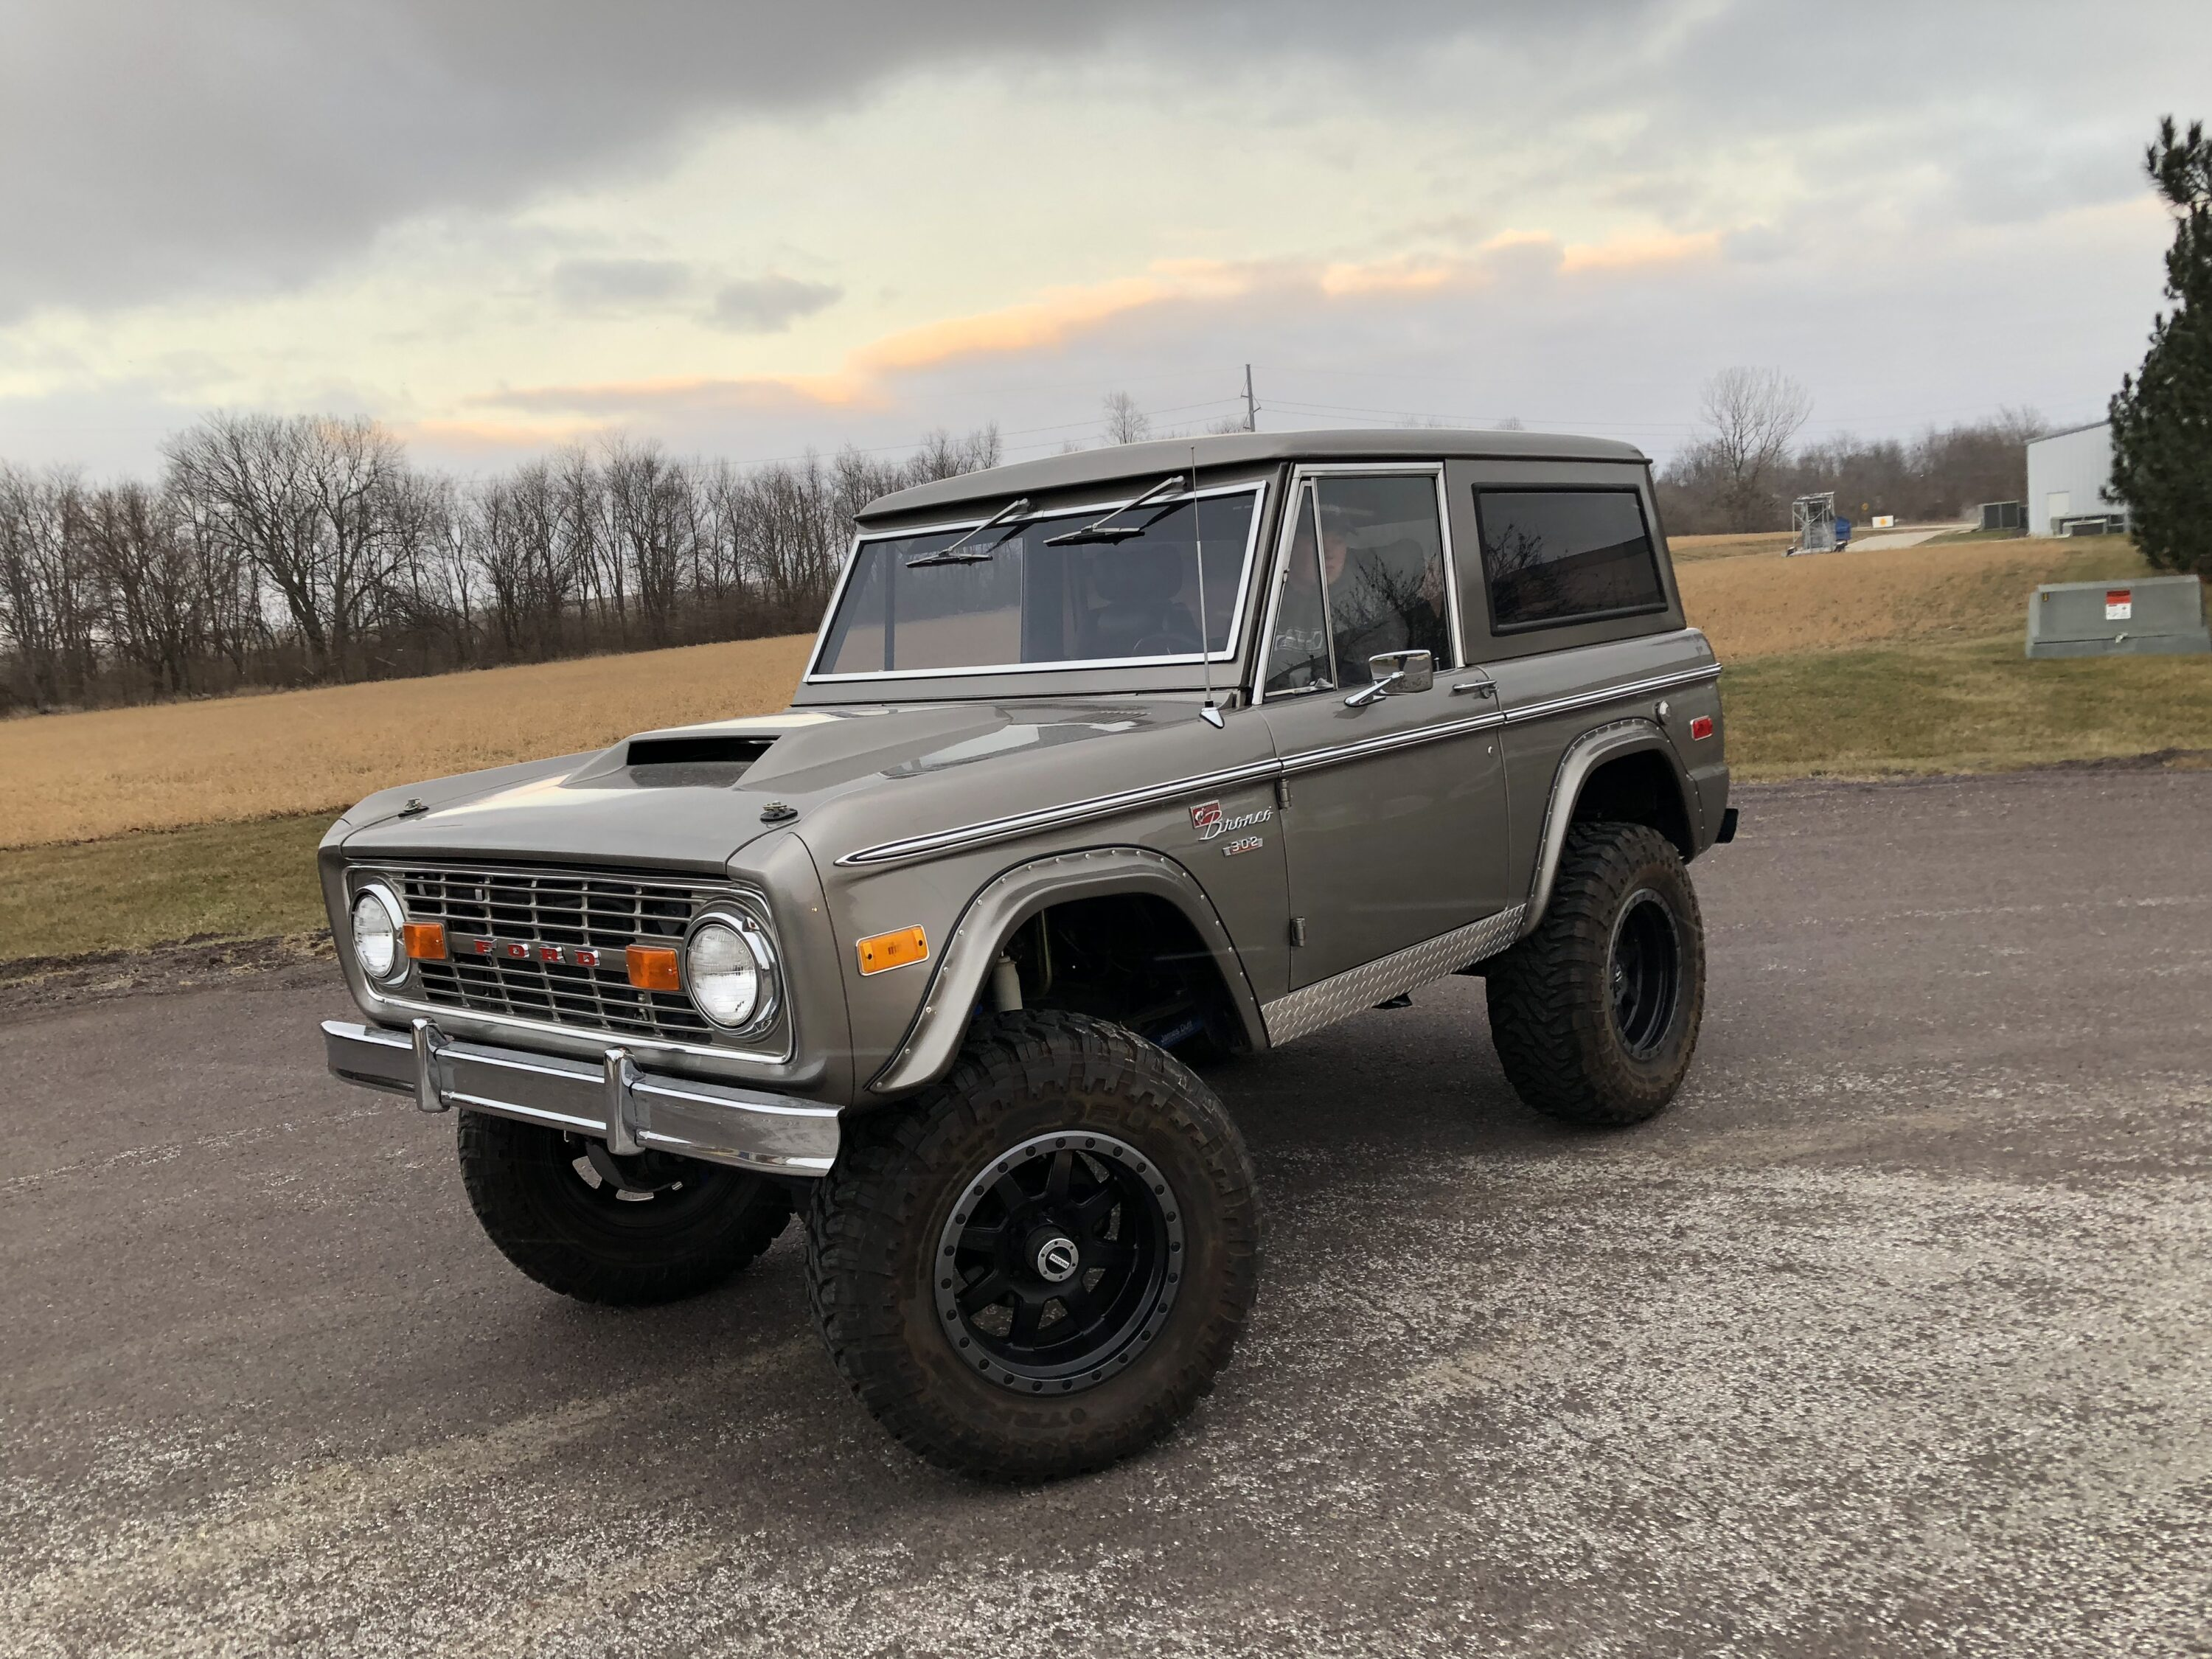 2018 Ford Bronco 4 Door >> 1974 Ford Bronco | Maxlider Brothers Customs